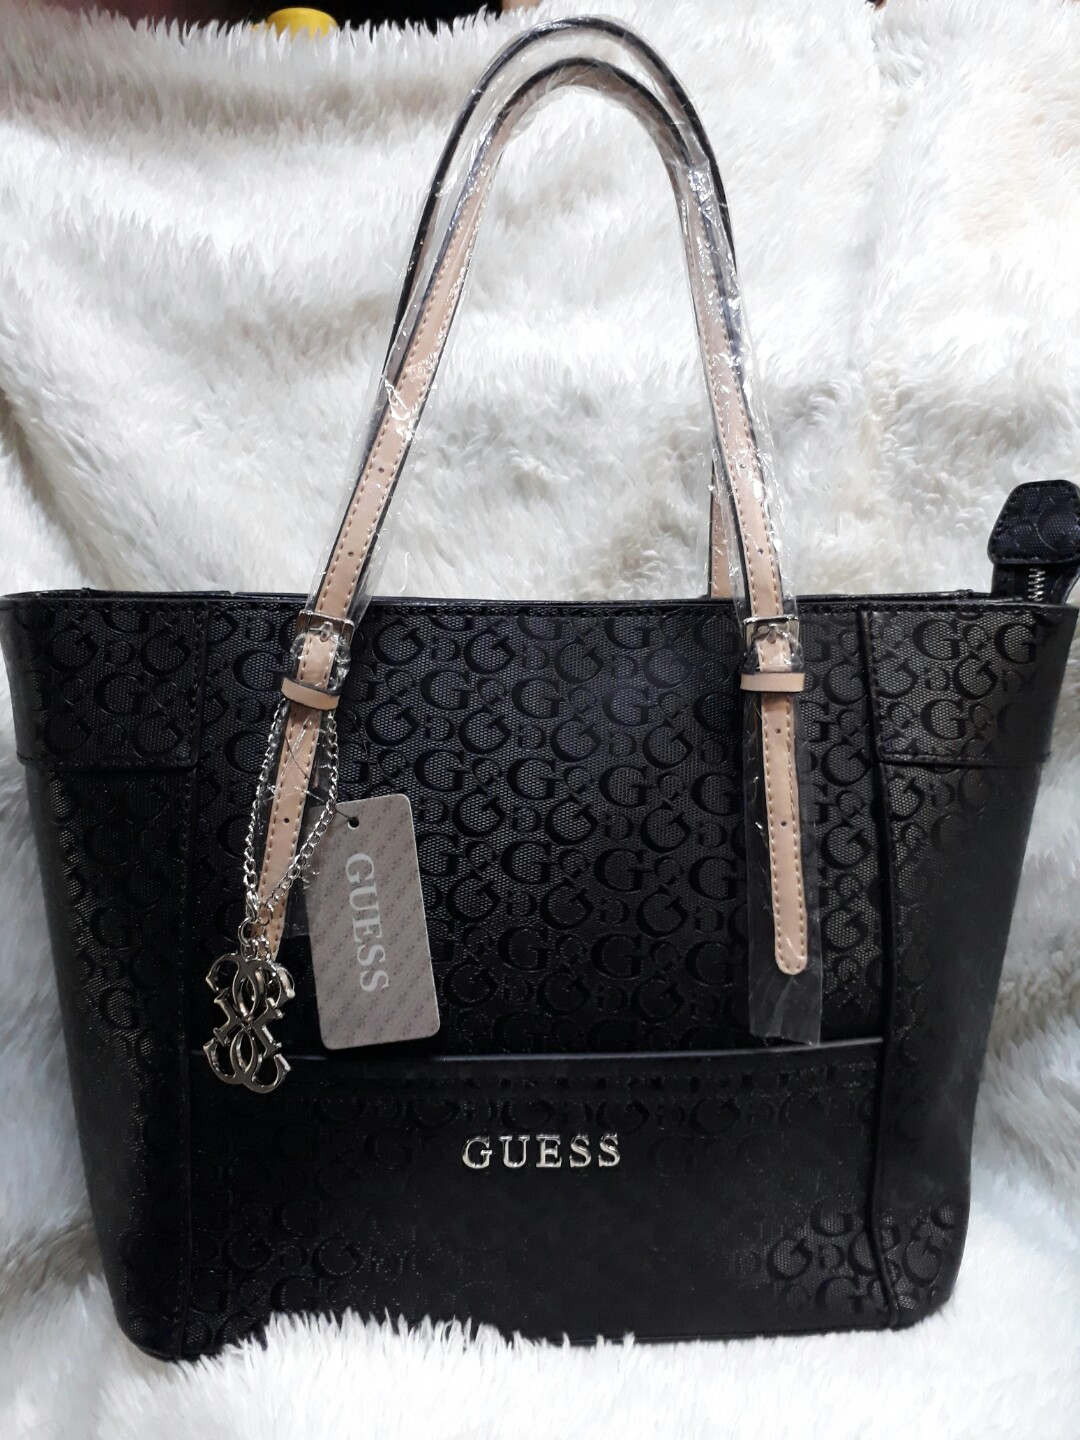 Guess tote bags preloved womens fashion bags wallets on carousell jpg  1080x1440 Guess tote a43b25d011524